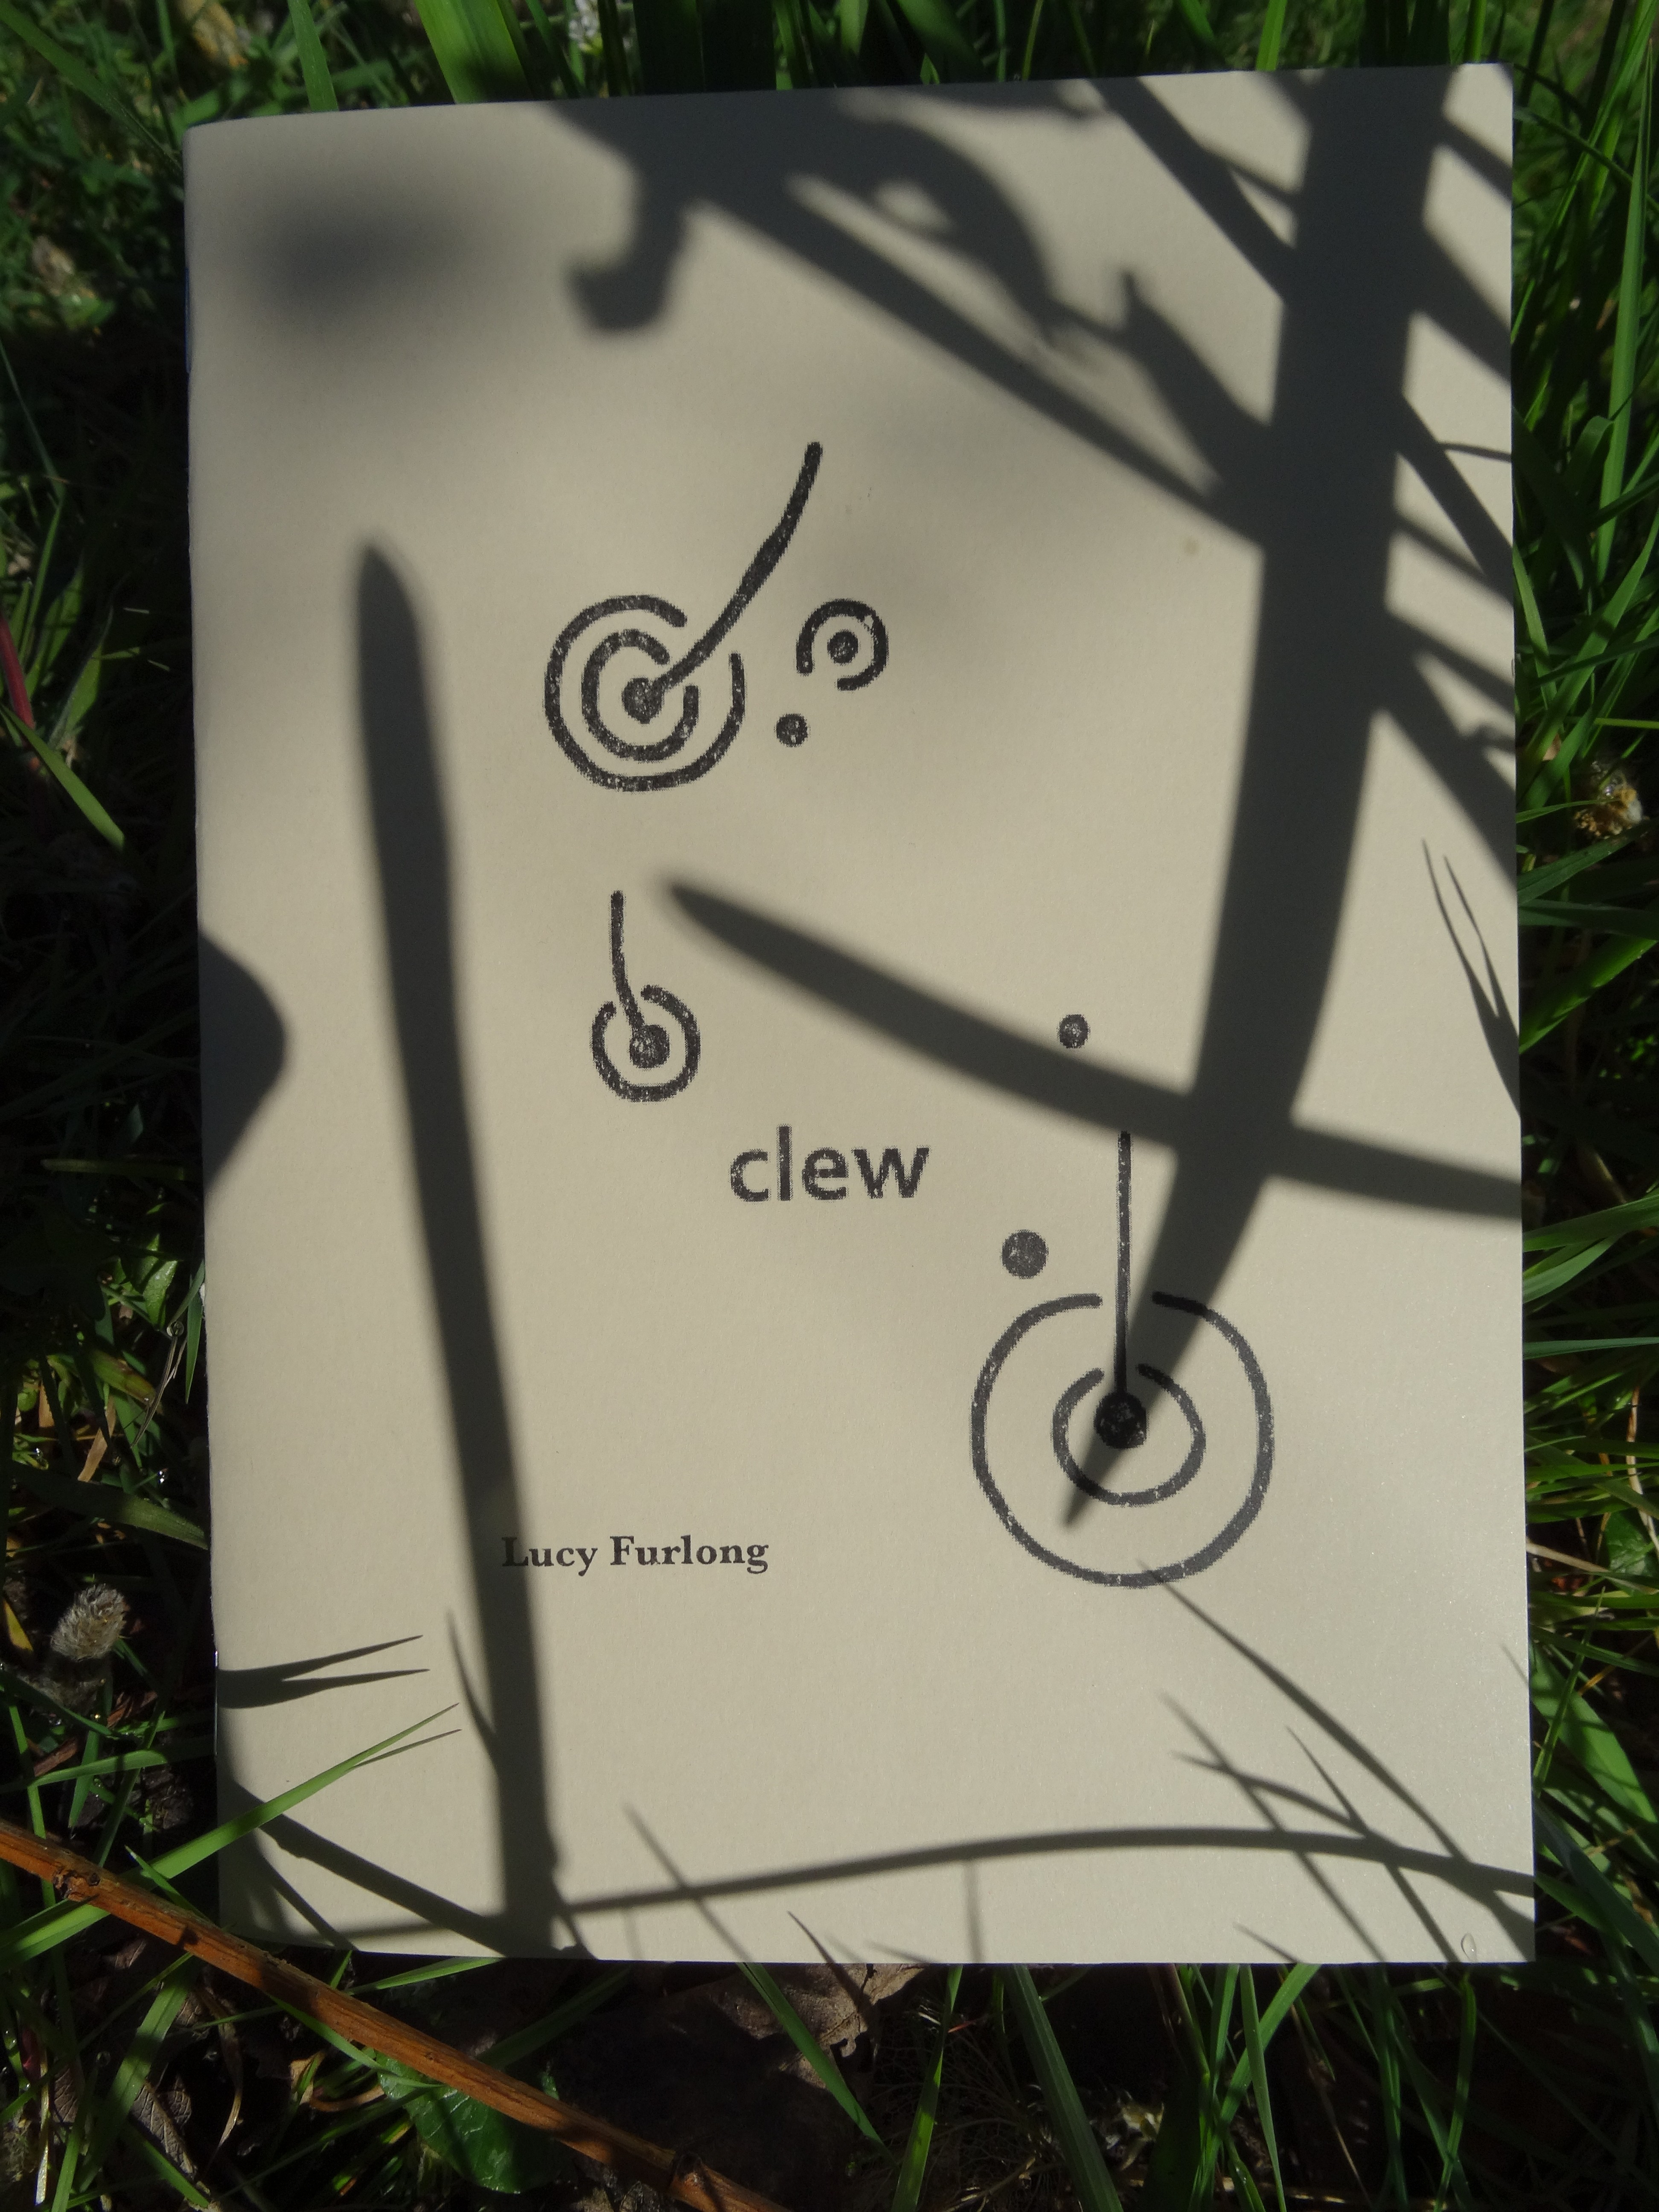 clewpic5